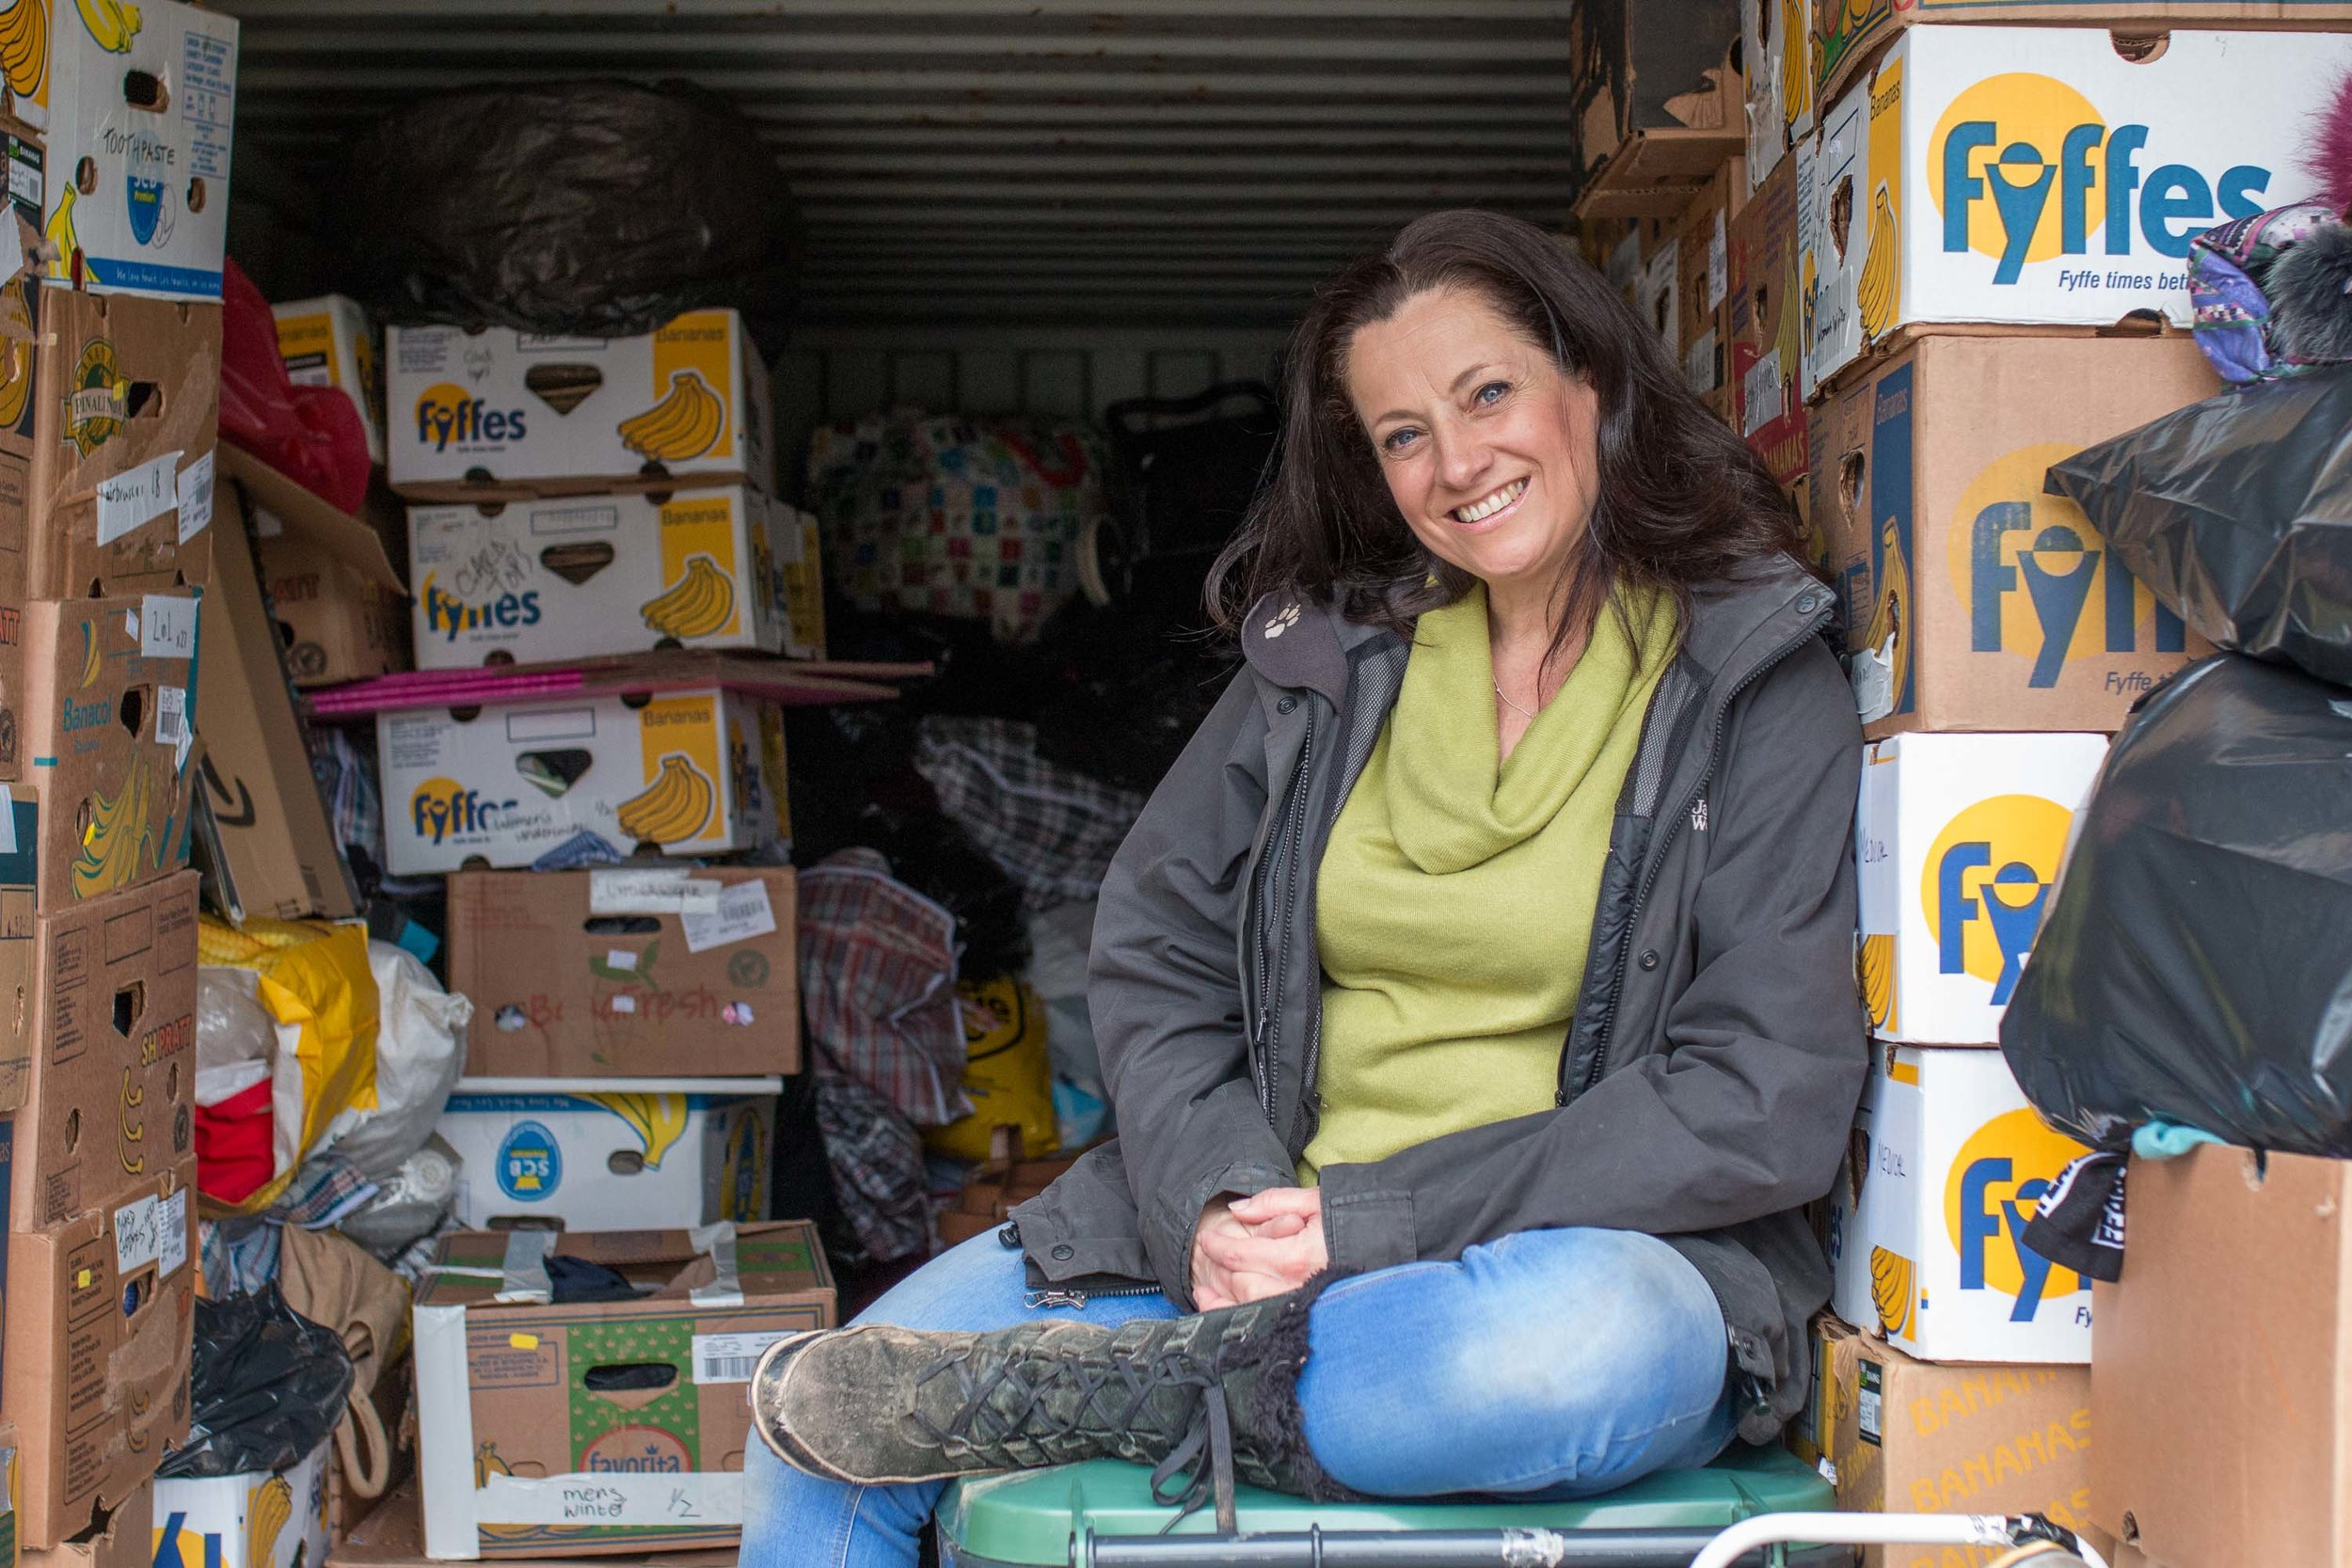 Sue has such a warm smile which reflects her kind soul. Her energy is endless as she runs Together 100 from this container unit known as the donation station. Every donation is sorted by Sue and her Duke of Edinburgh volunteers every week and is destined for refugees in Europe. Sue is also a wonderful photographer, works at the very inspiring Electric Umbrella charity and is mother to her two girls.  www.facebook.com/togetherrefugee/